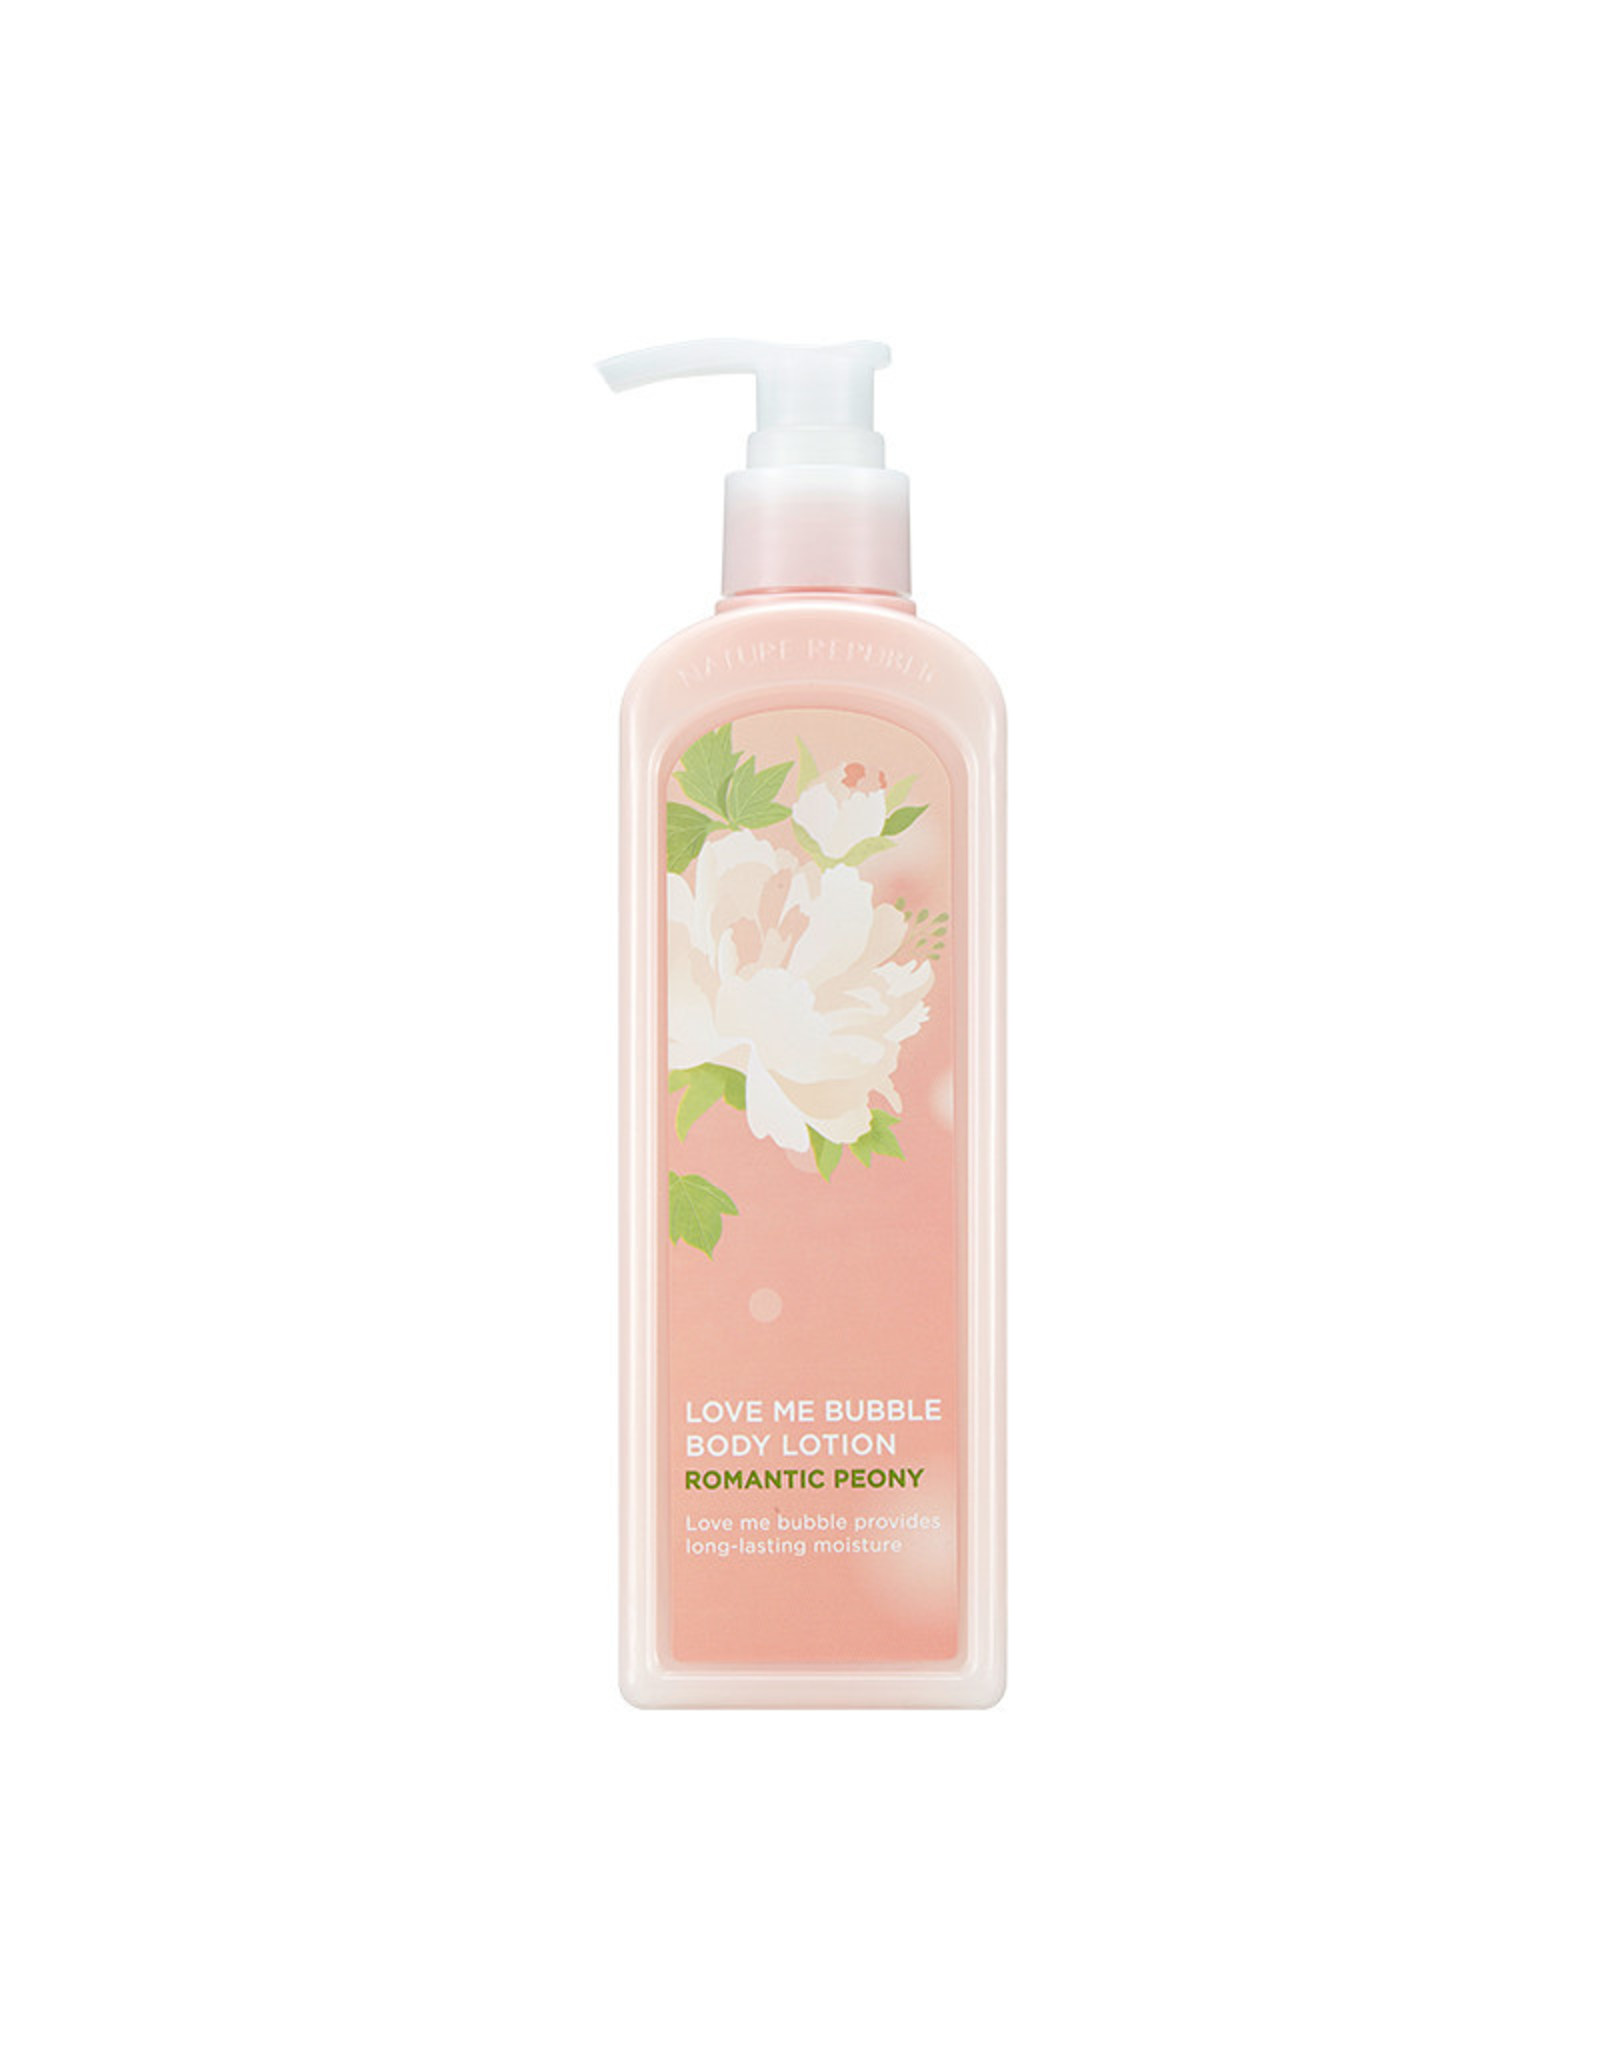 Love Me Bubble Body Lotion-Romantic Peony (Orig 22.90)